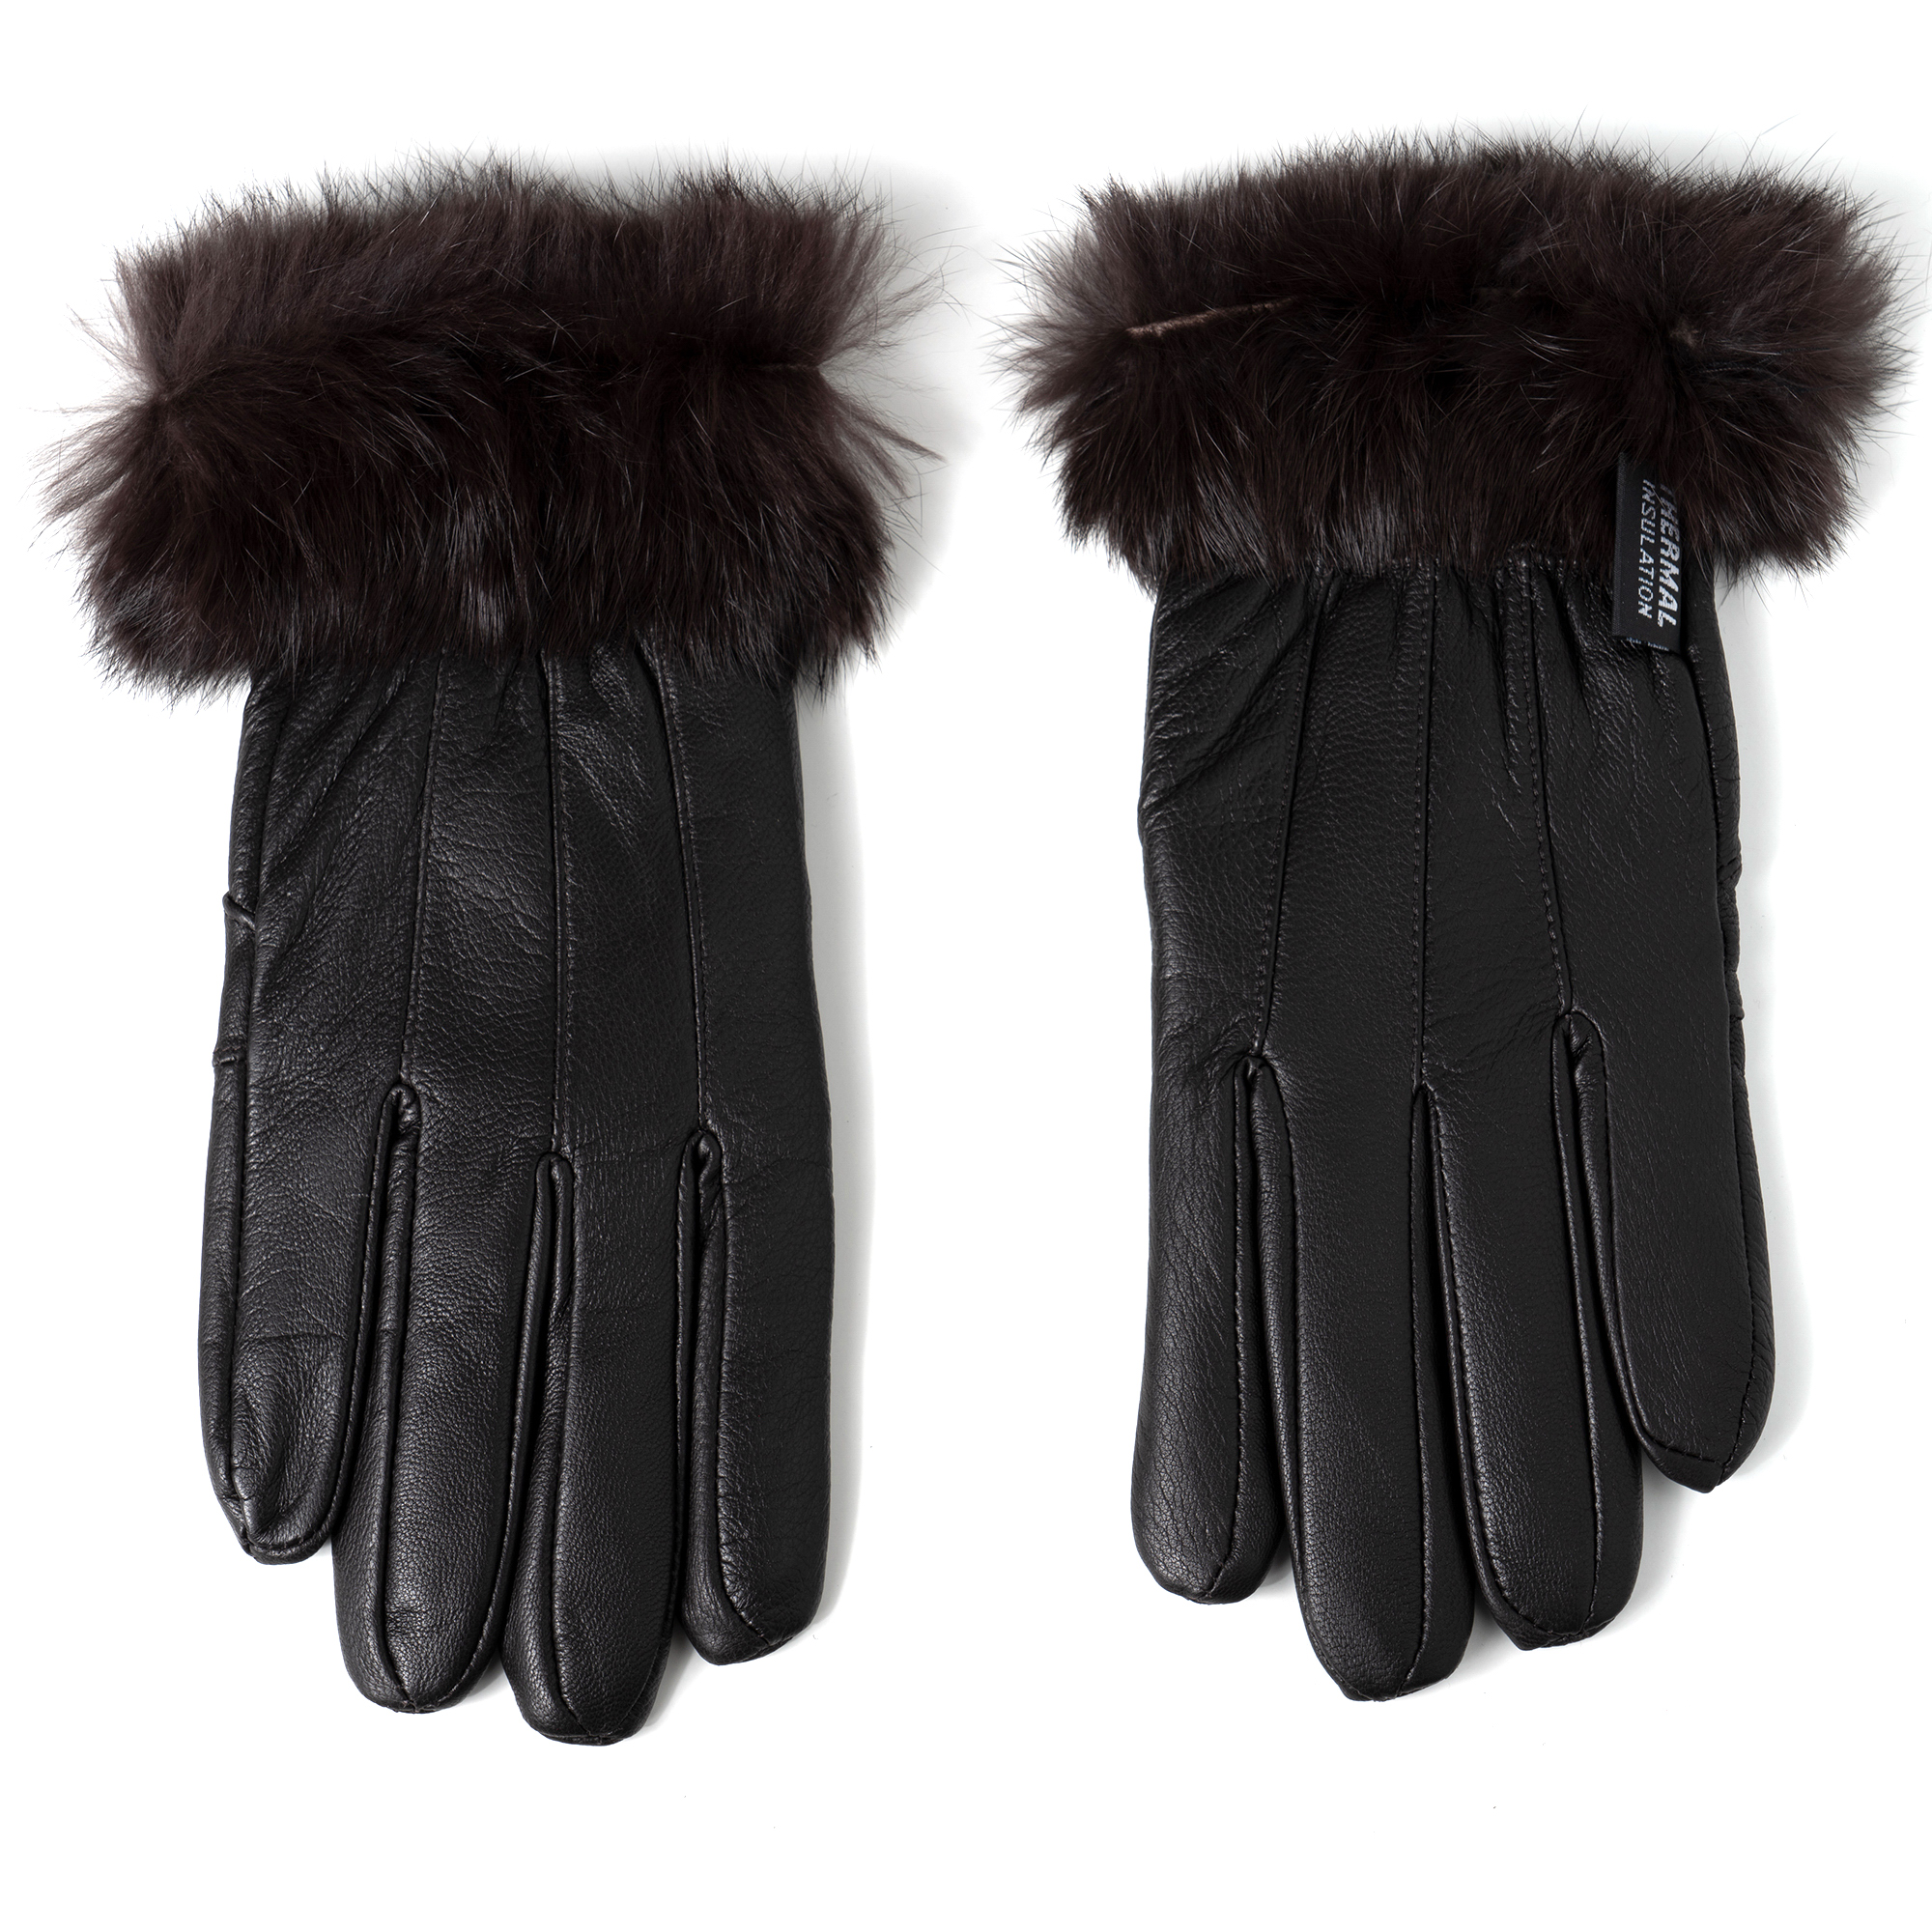 Alpine-Swiss-Womens-Dressy-Gloves-Genuine-Leather-Thermal-Lining-Fur-Trim-Cuff thumbnail 26